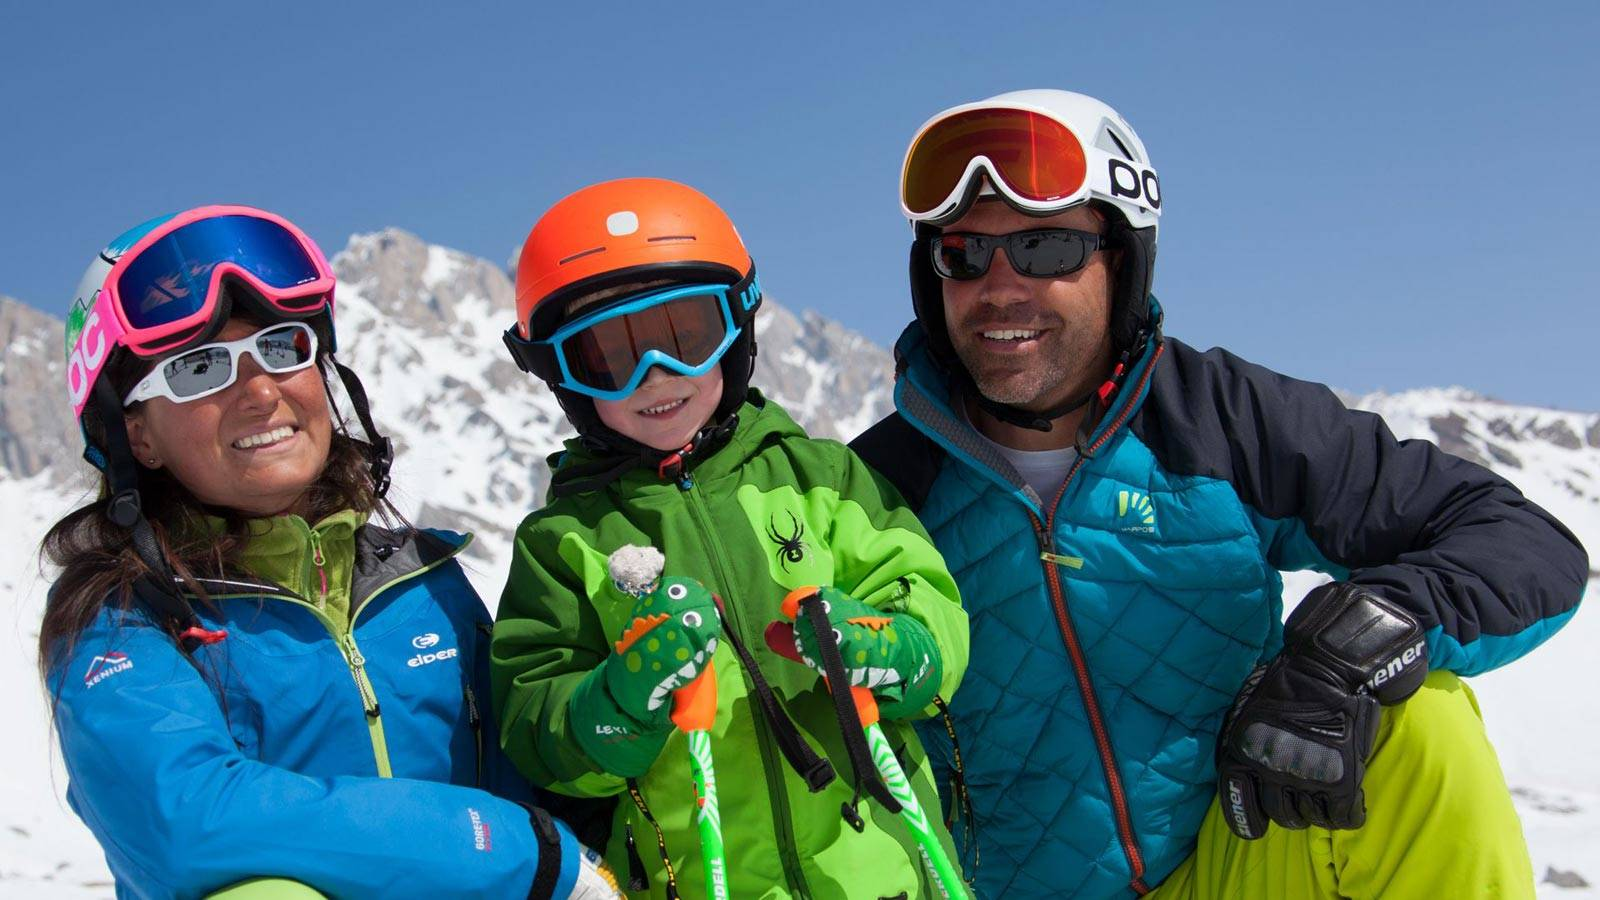 A family enjoys a holiday on the snow at Passo San Pellegrino